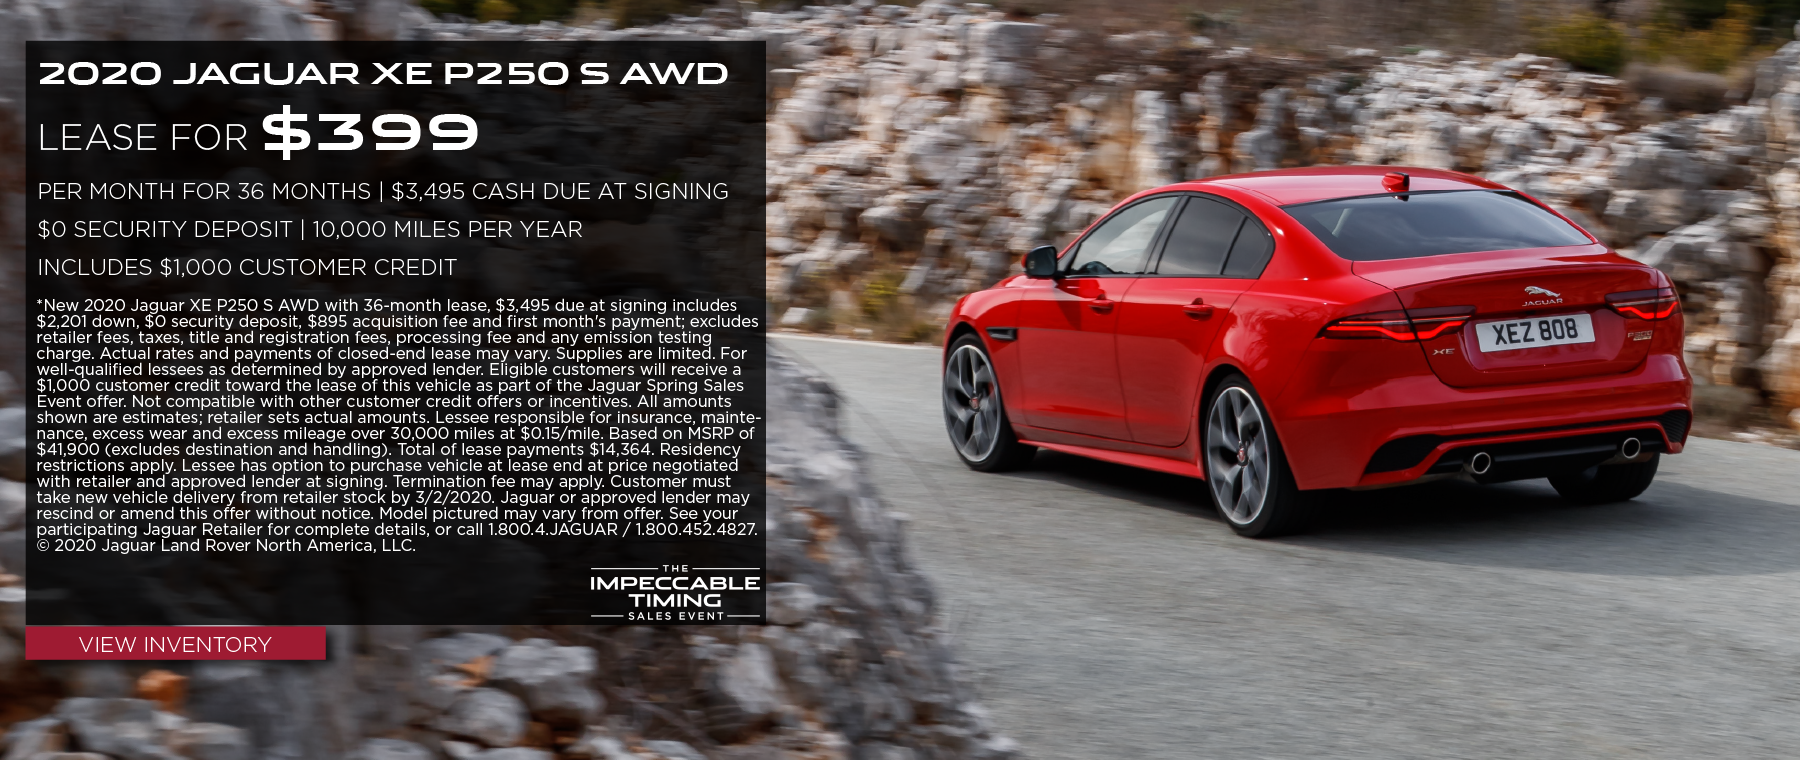 2020 JAGUAR XE P250 S AWD. $399 PER MONTH. 36 MONTH LEASE TERM. $3,495 CASH DUE AT SIGNING. INCLUDES $1,000 CUSTOMER CREDIT.  $0 SECURITY DEPOSIT. 10,000 MILES PER YEAR. OFFER ENDS 3/2/2020. VIEW INVENTORY. RED JAGUAR XE DRIVING THROUGH ROCK FORMATIONS.